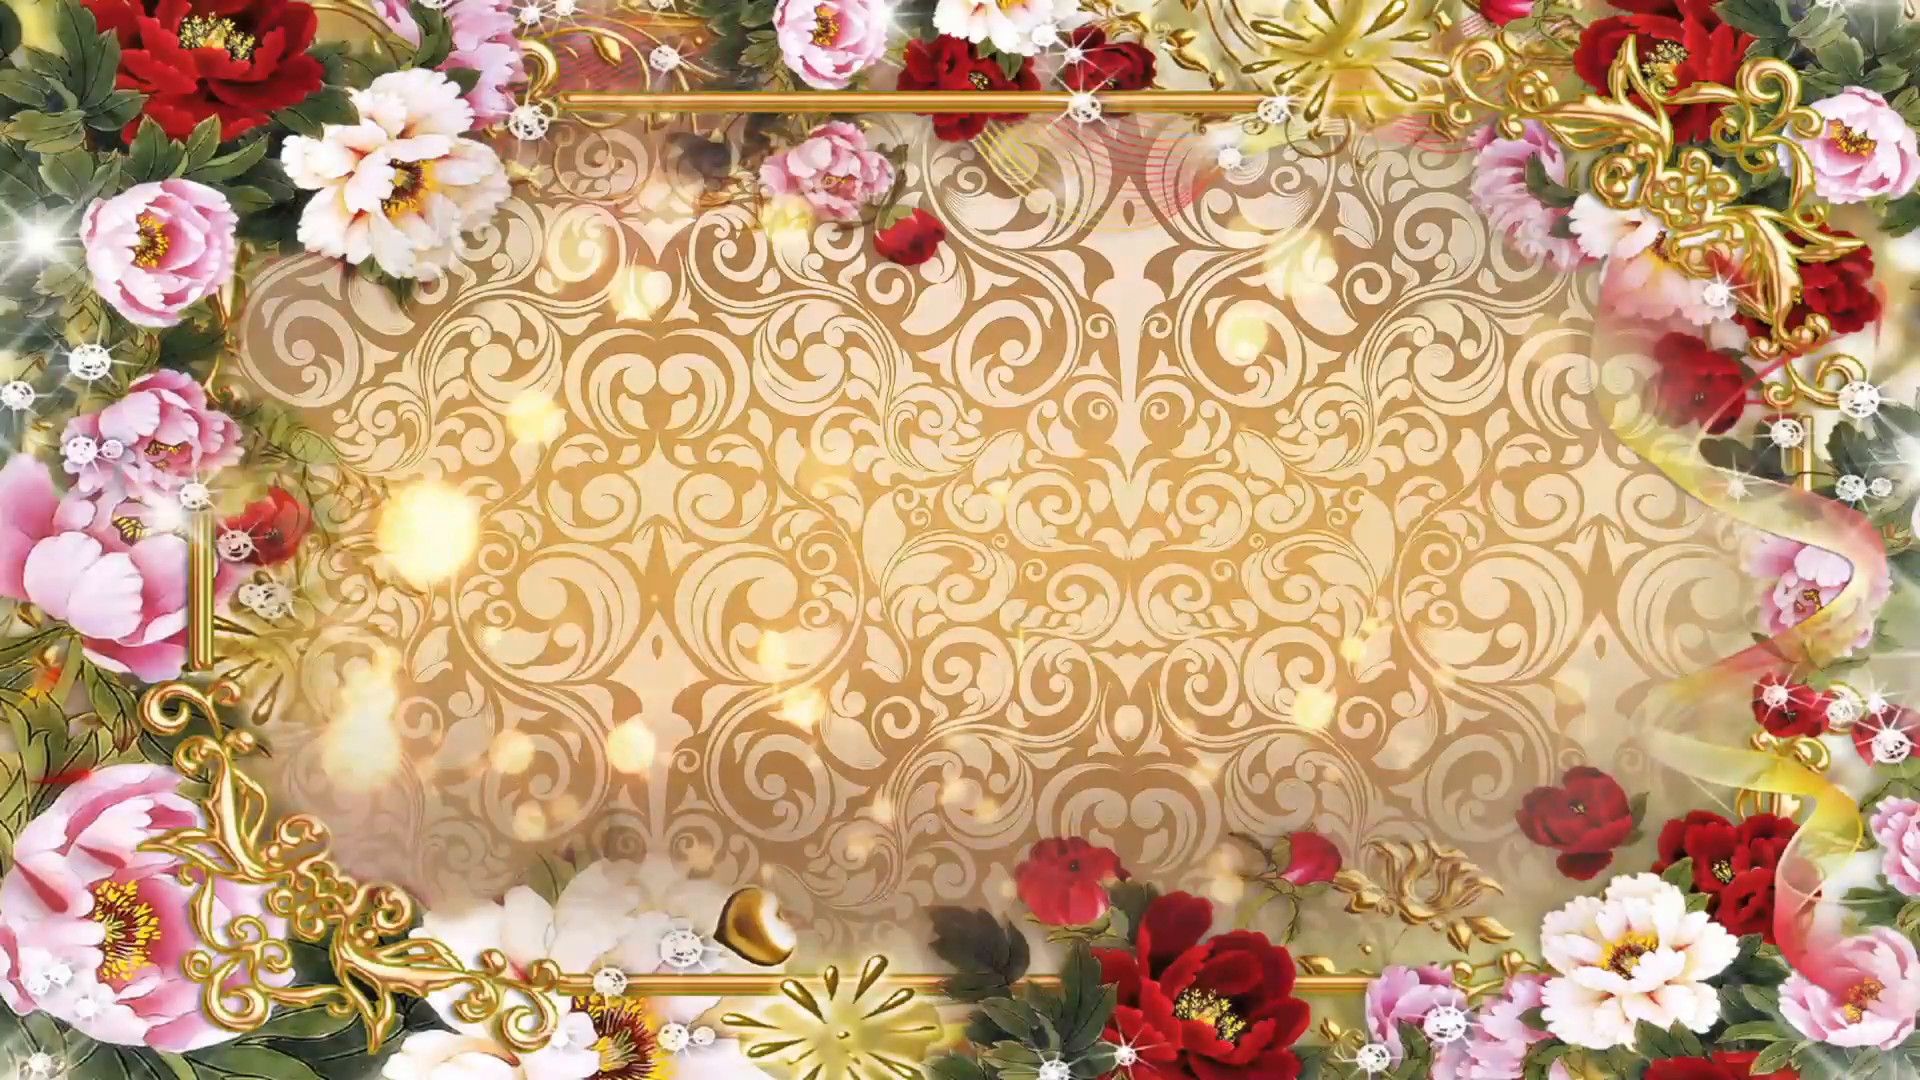 Wedding Background Pictures ①